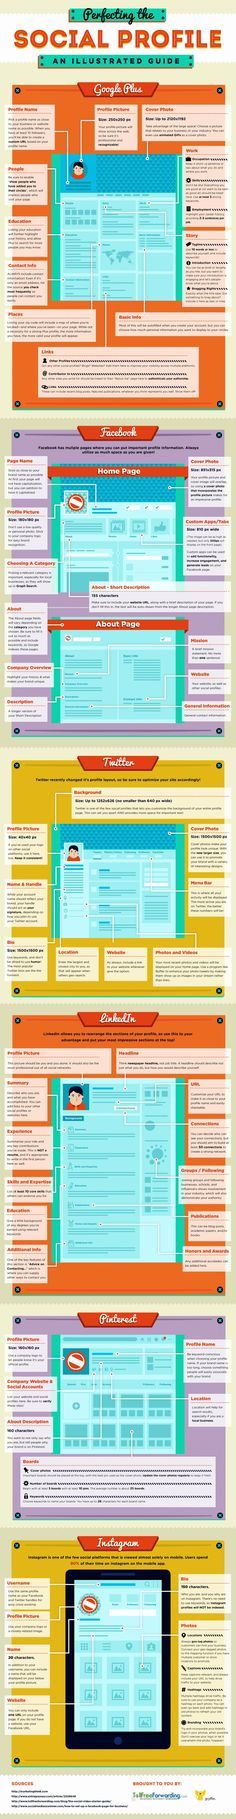 Perfecting the Social Profile: An Illustrated Guide #infographic